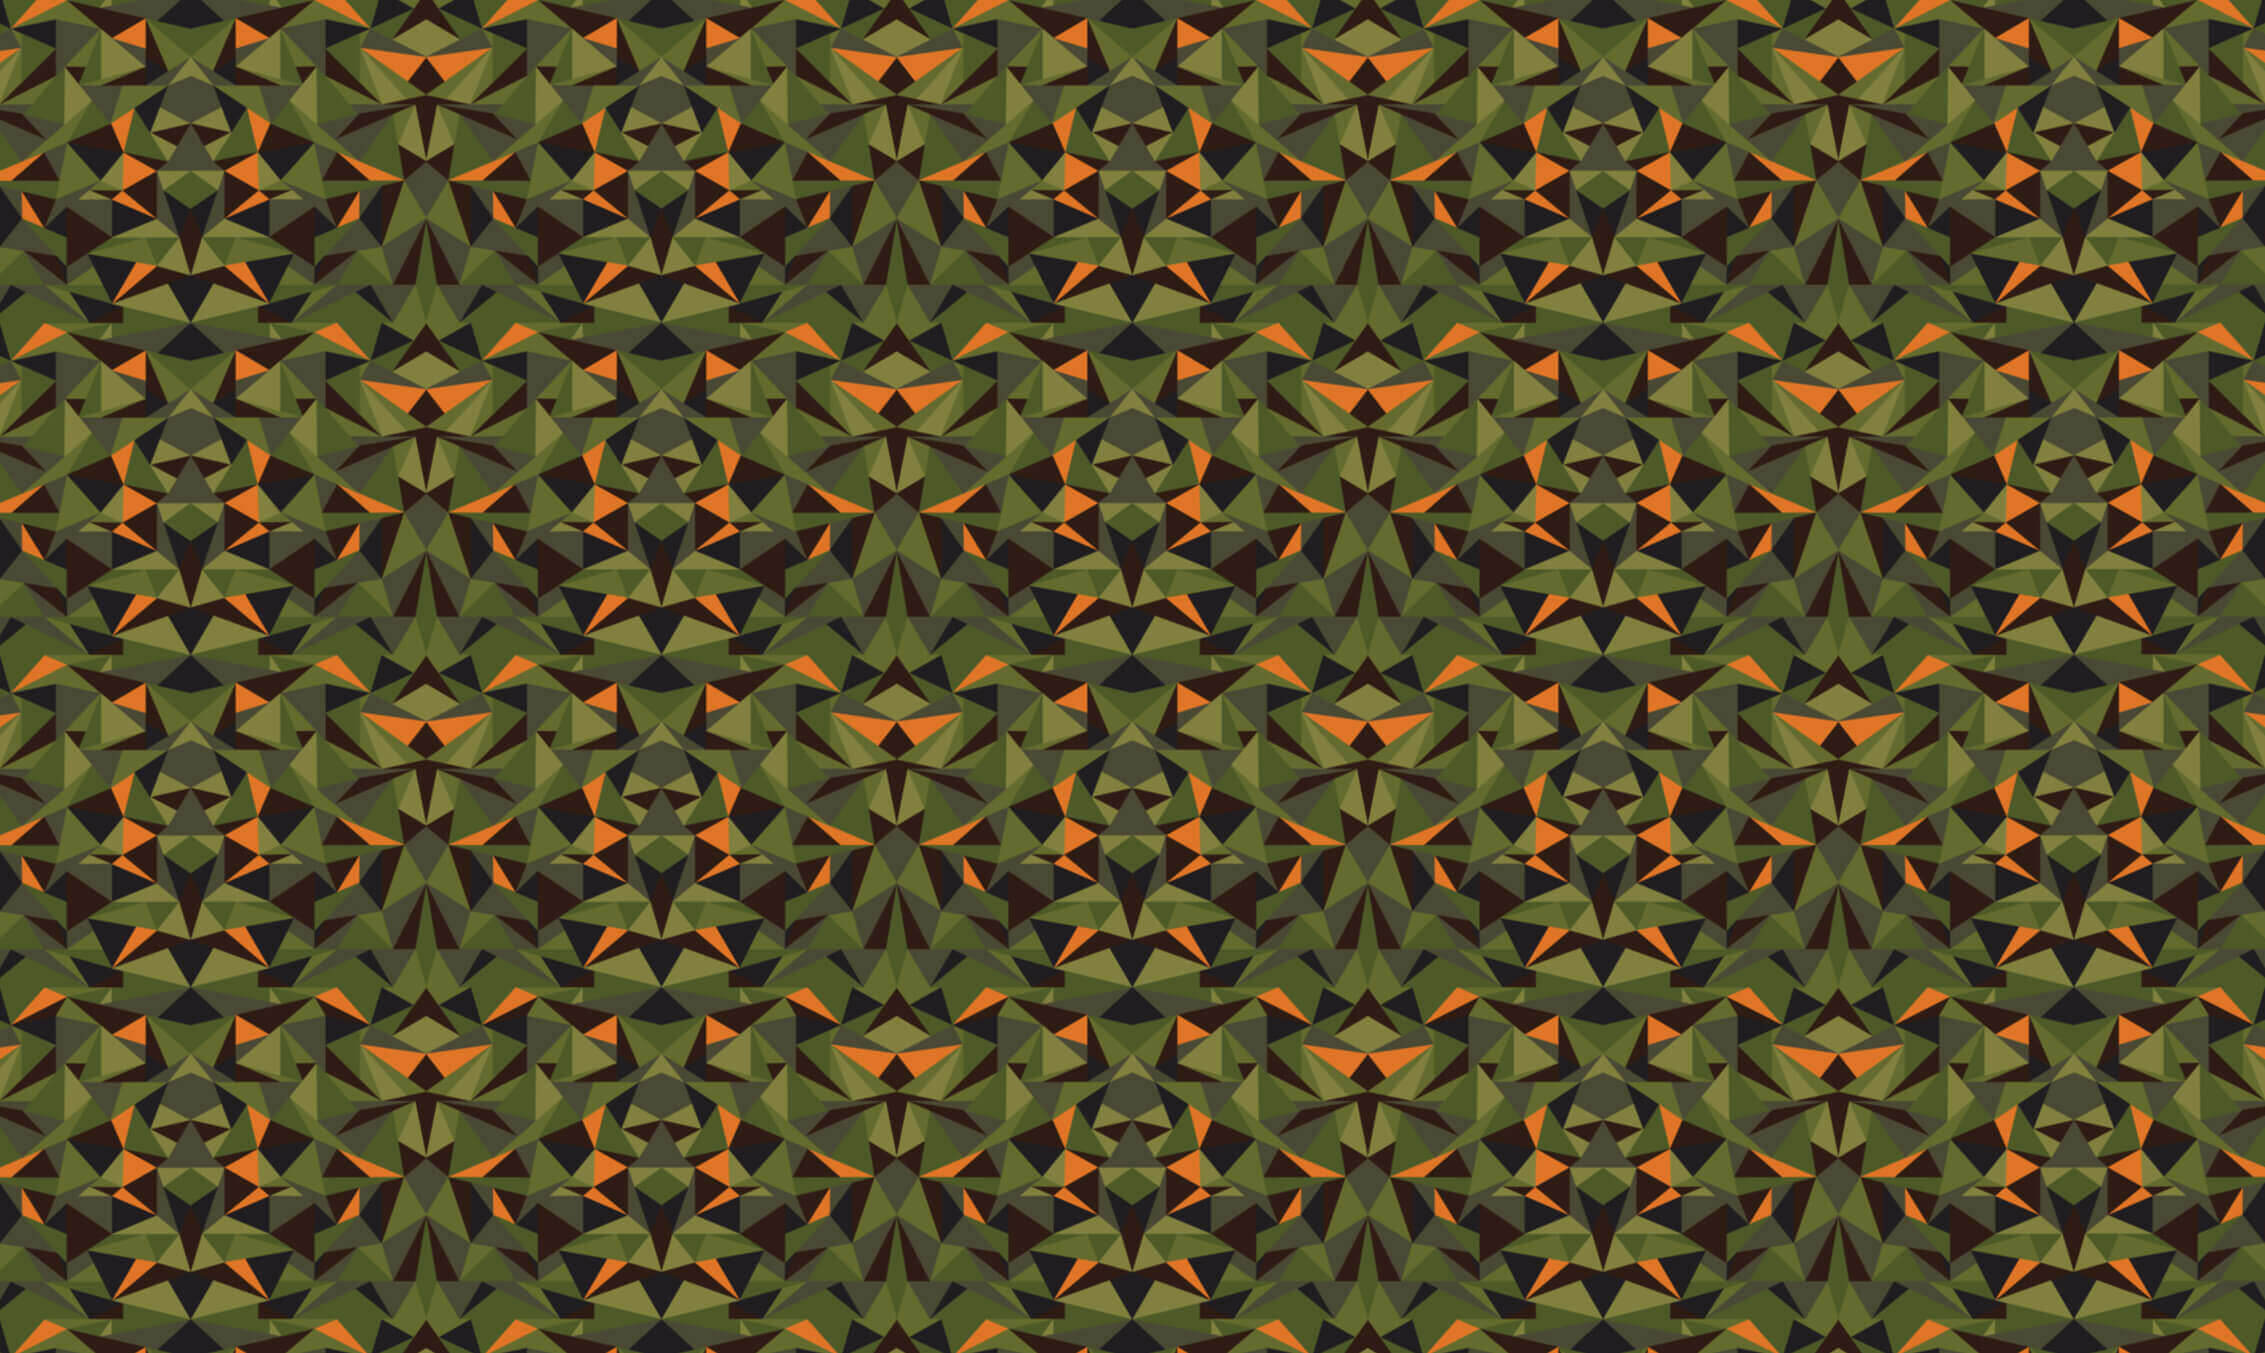 Jmetric Pattern 2